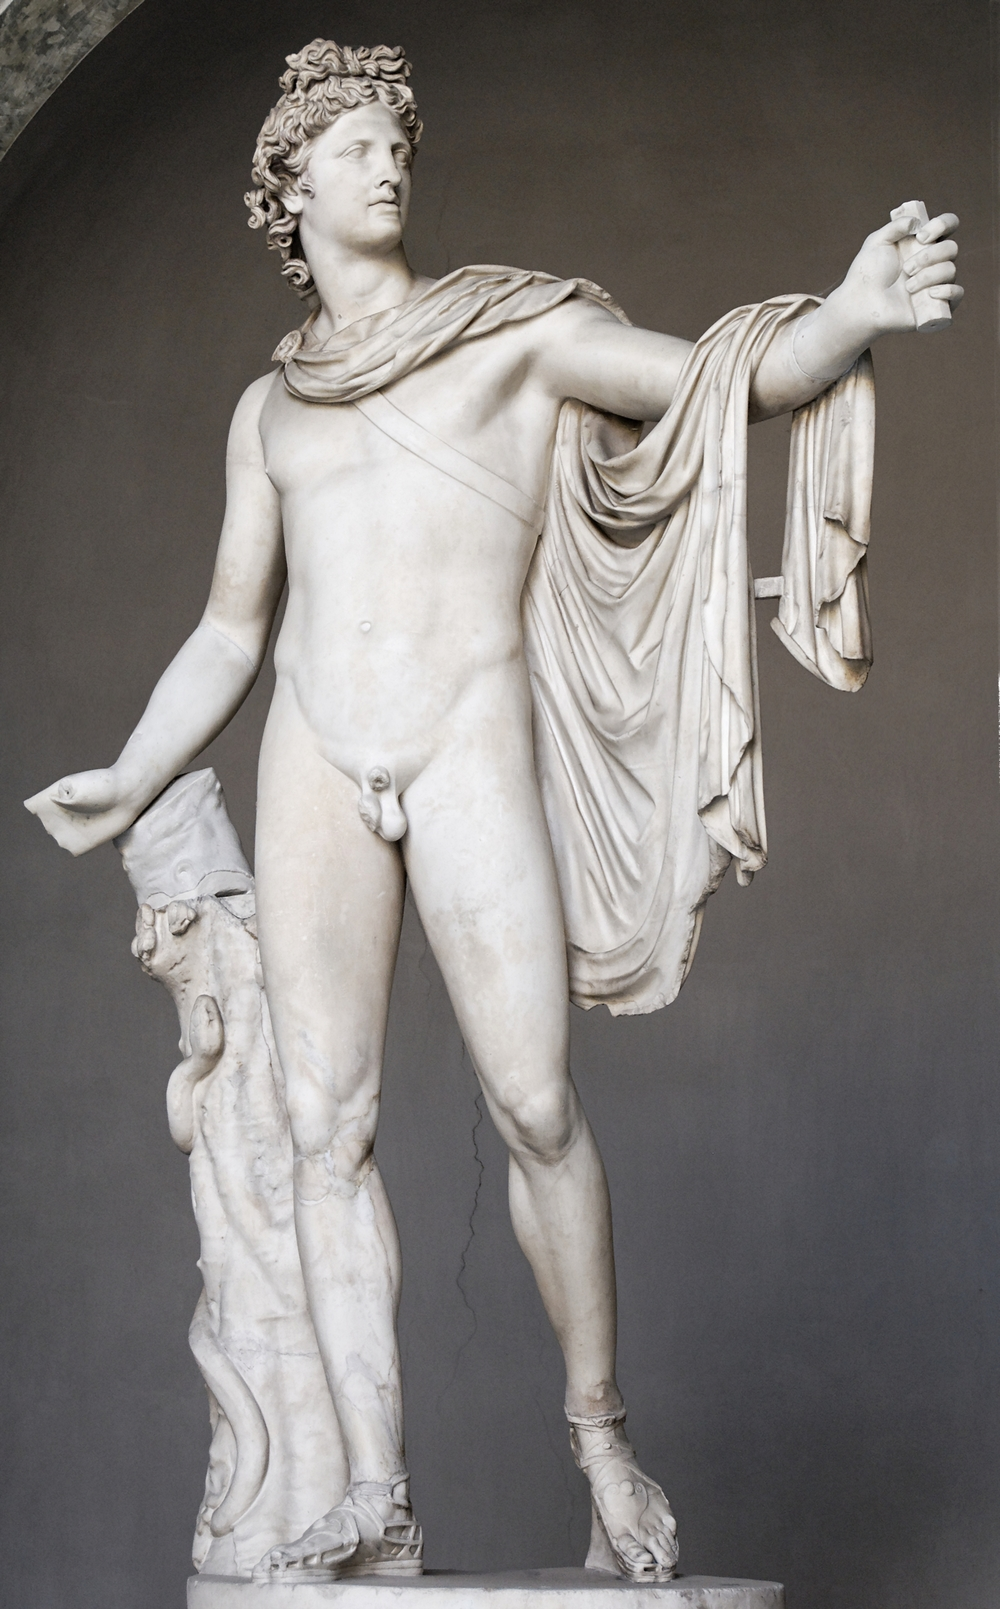 An Apollo statue. Credit: Marie-Lan Nguyen via Wikimedia Commons.